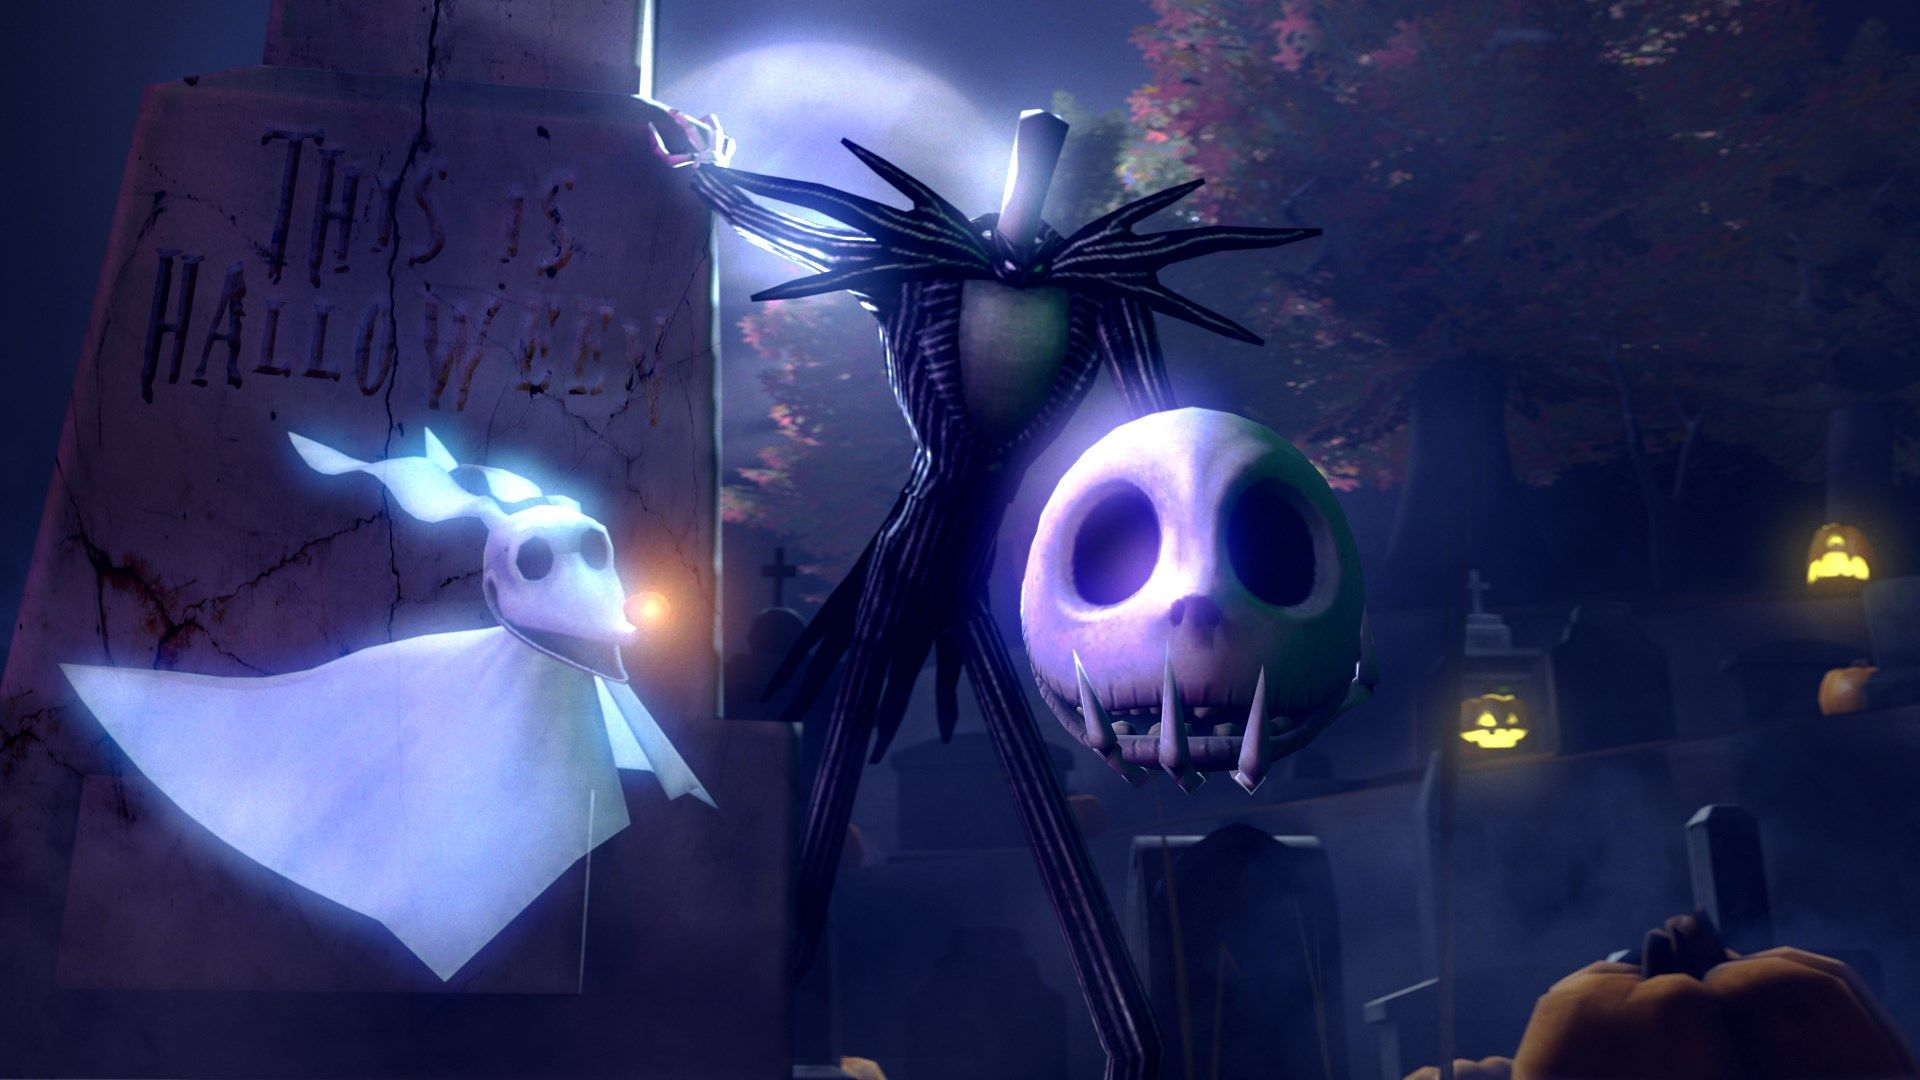 Cool Wallpaper Halloween Nightmare Before Christmas - 6b45209a3d4dcfdec1a983035081a5af  2018_94153.jpg